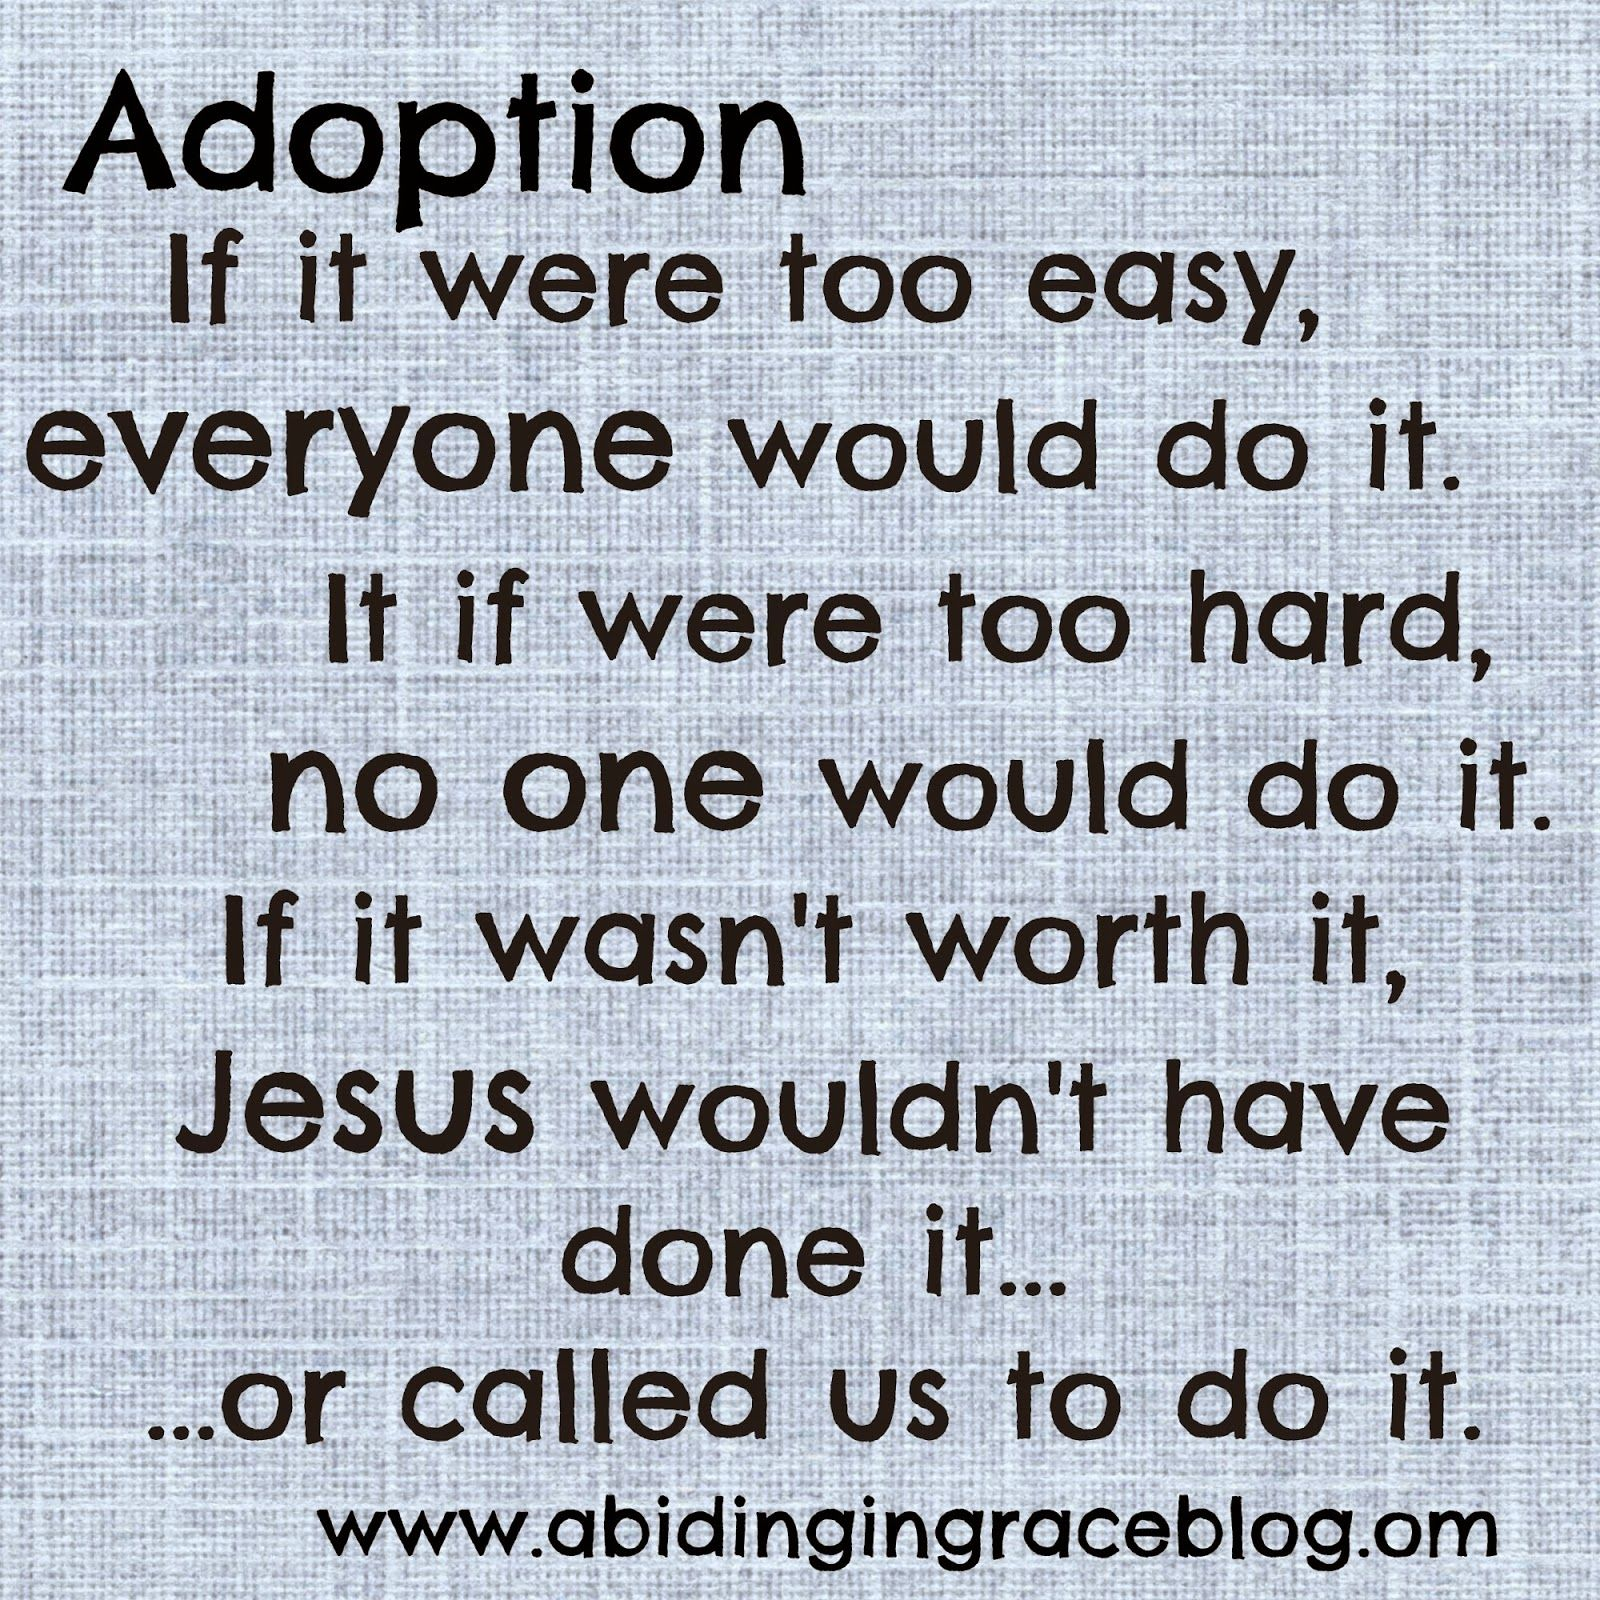 Quotes About Adoption Classy Adoption Quote  Adoption Isn't Easyinternationally And Domestic